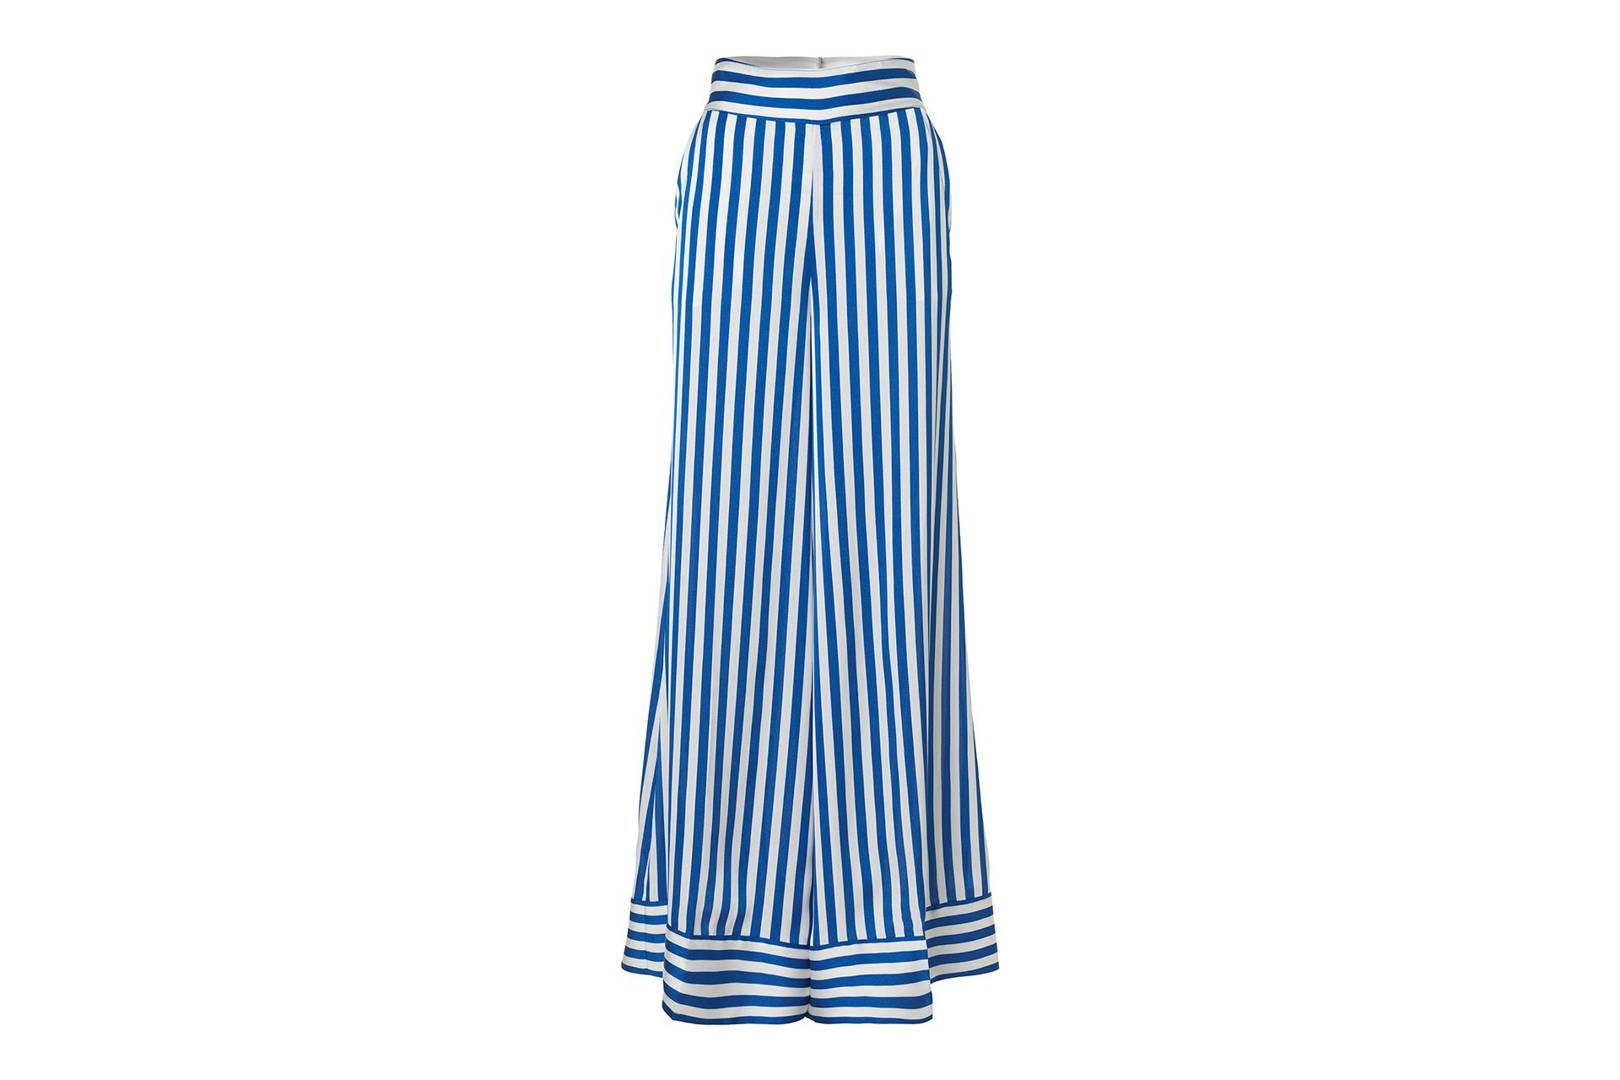 What to wear to a wedding not dresses - trousers, skirts, jackets ...